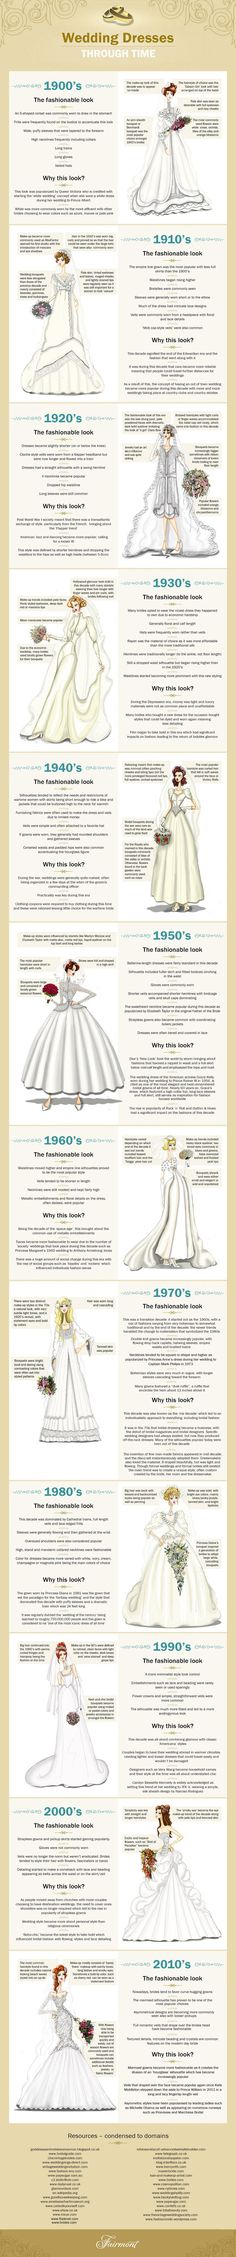 Check out how wedding dress trends have changed over the past century